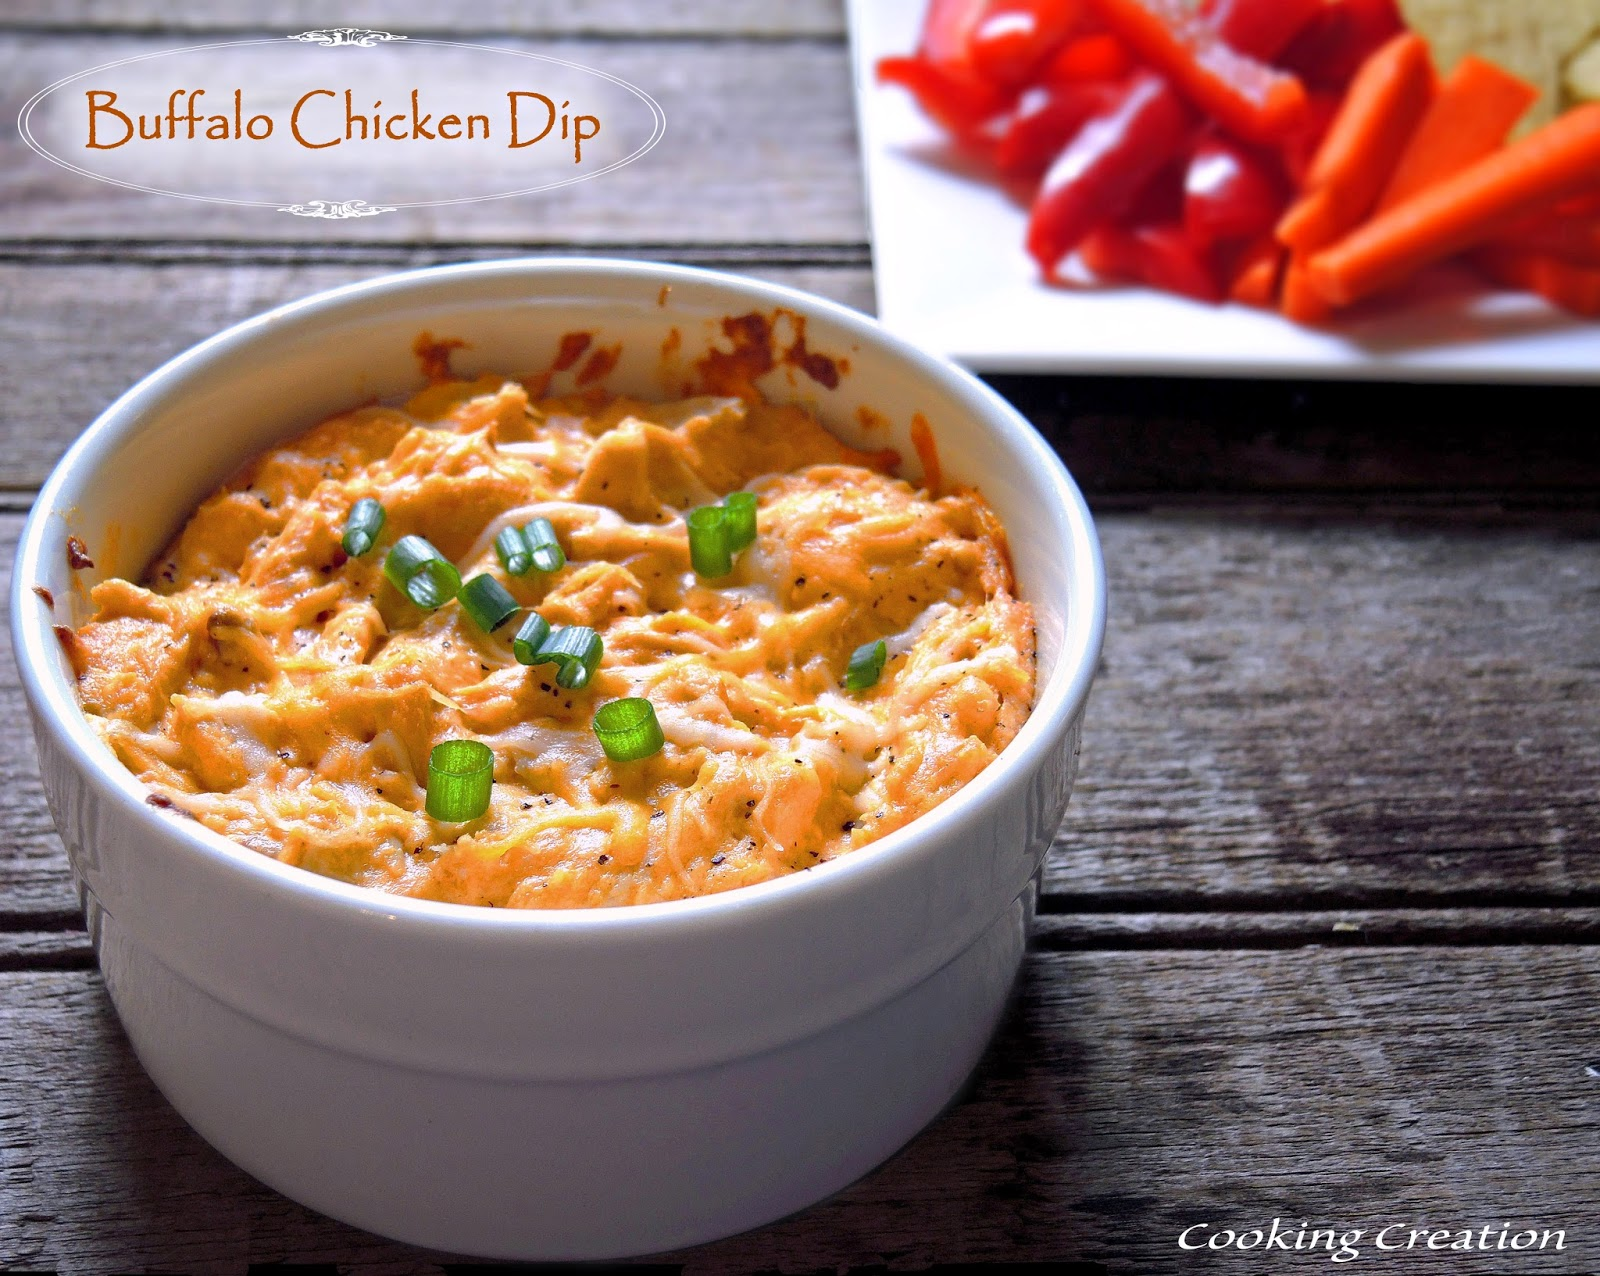 Cooking Creation: Buffalo Chicken Dip